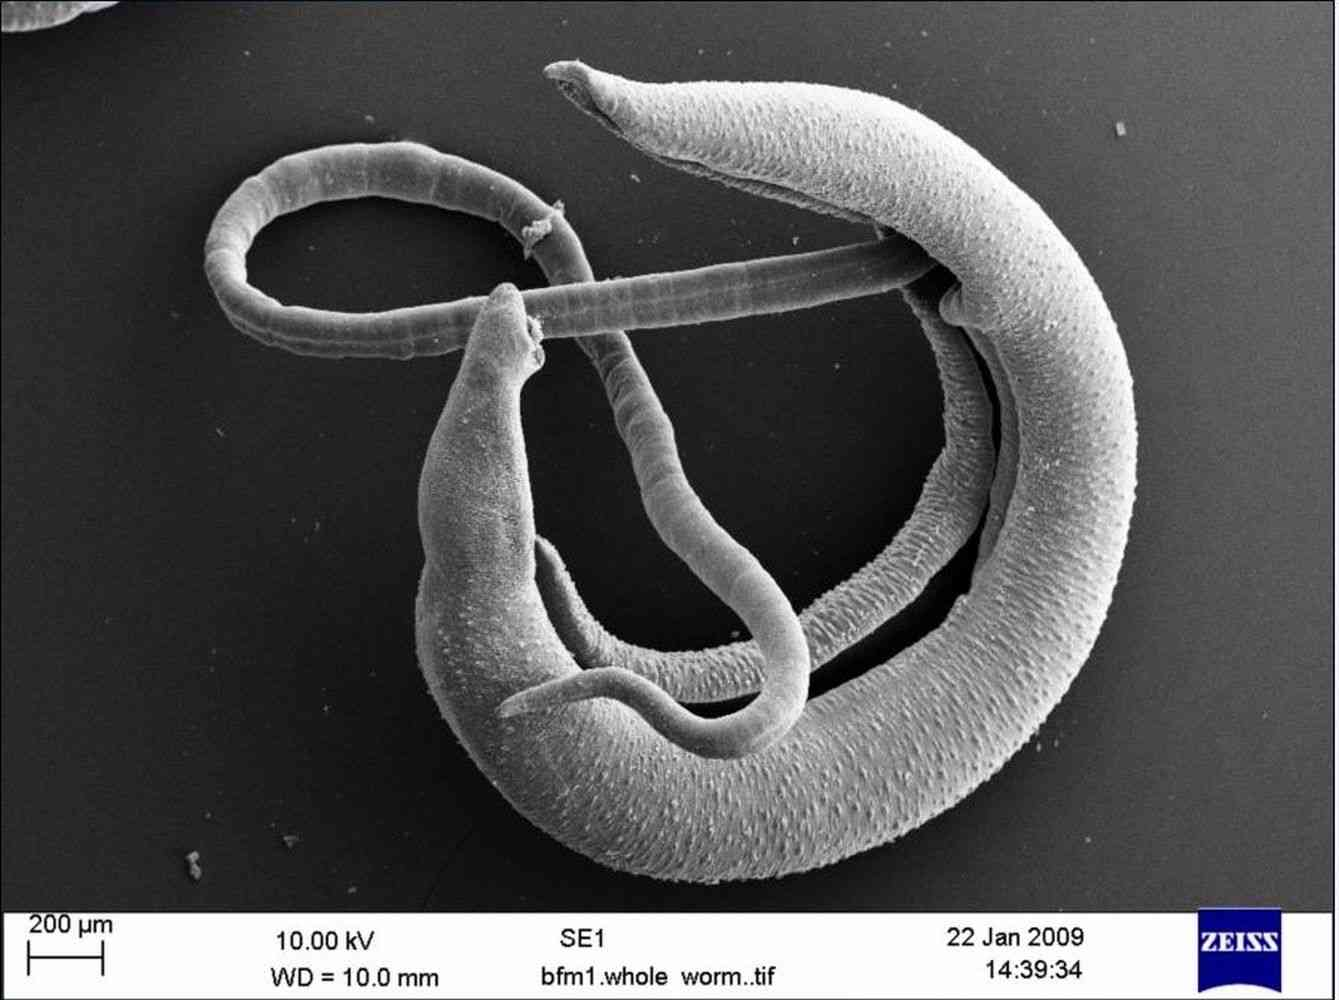 Scanning electron micrograph of Schistosoma bovis - an agent of ruminant schistosomiasis - Hybrid forms of S. bovis-S. haematobium can infect humans and are reported in West Africa and Corsica.